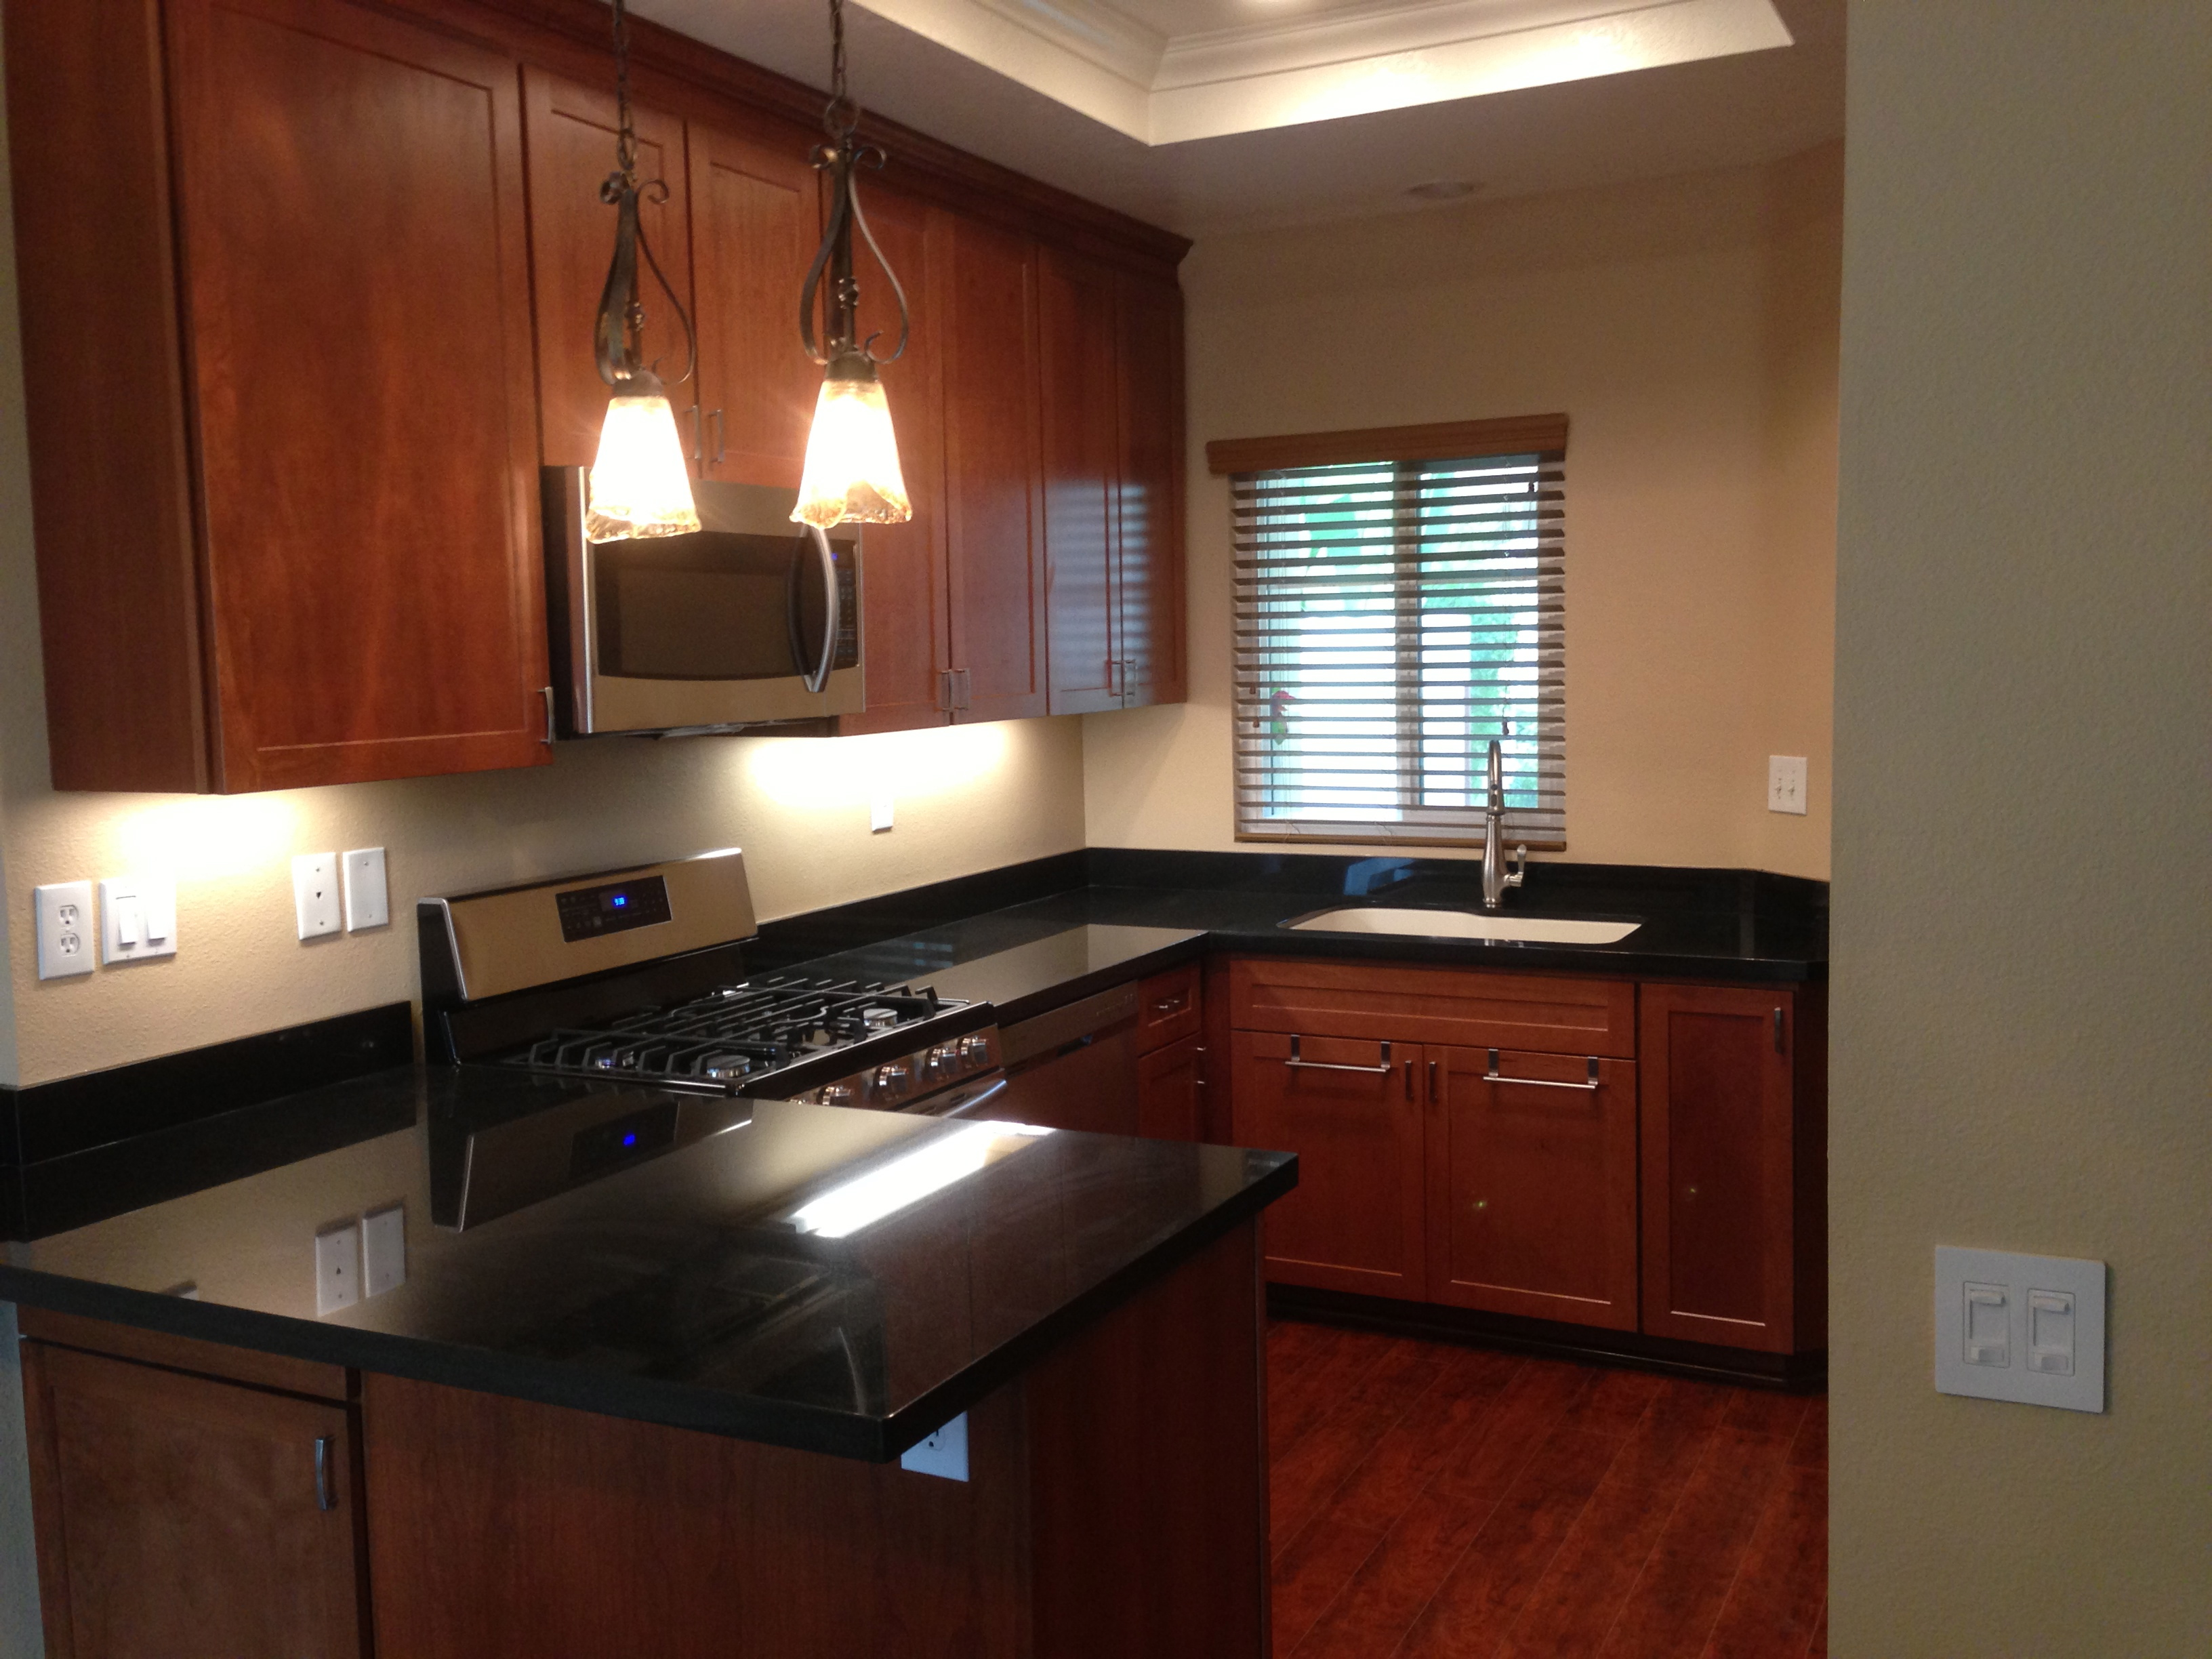 Inspired Remodels Is An Authorized Dealer. We Handle All Measuring. We Will  Even Help You Pick The Cabinet, Door Design, And Accessories That Bring  Your ...